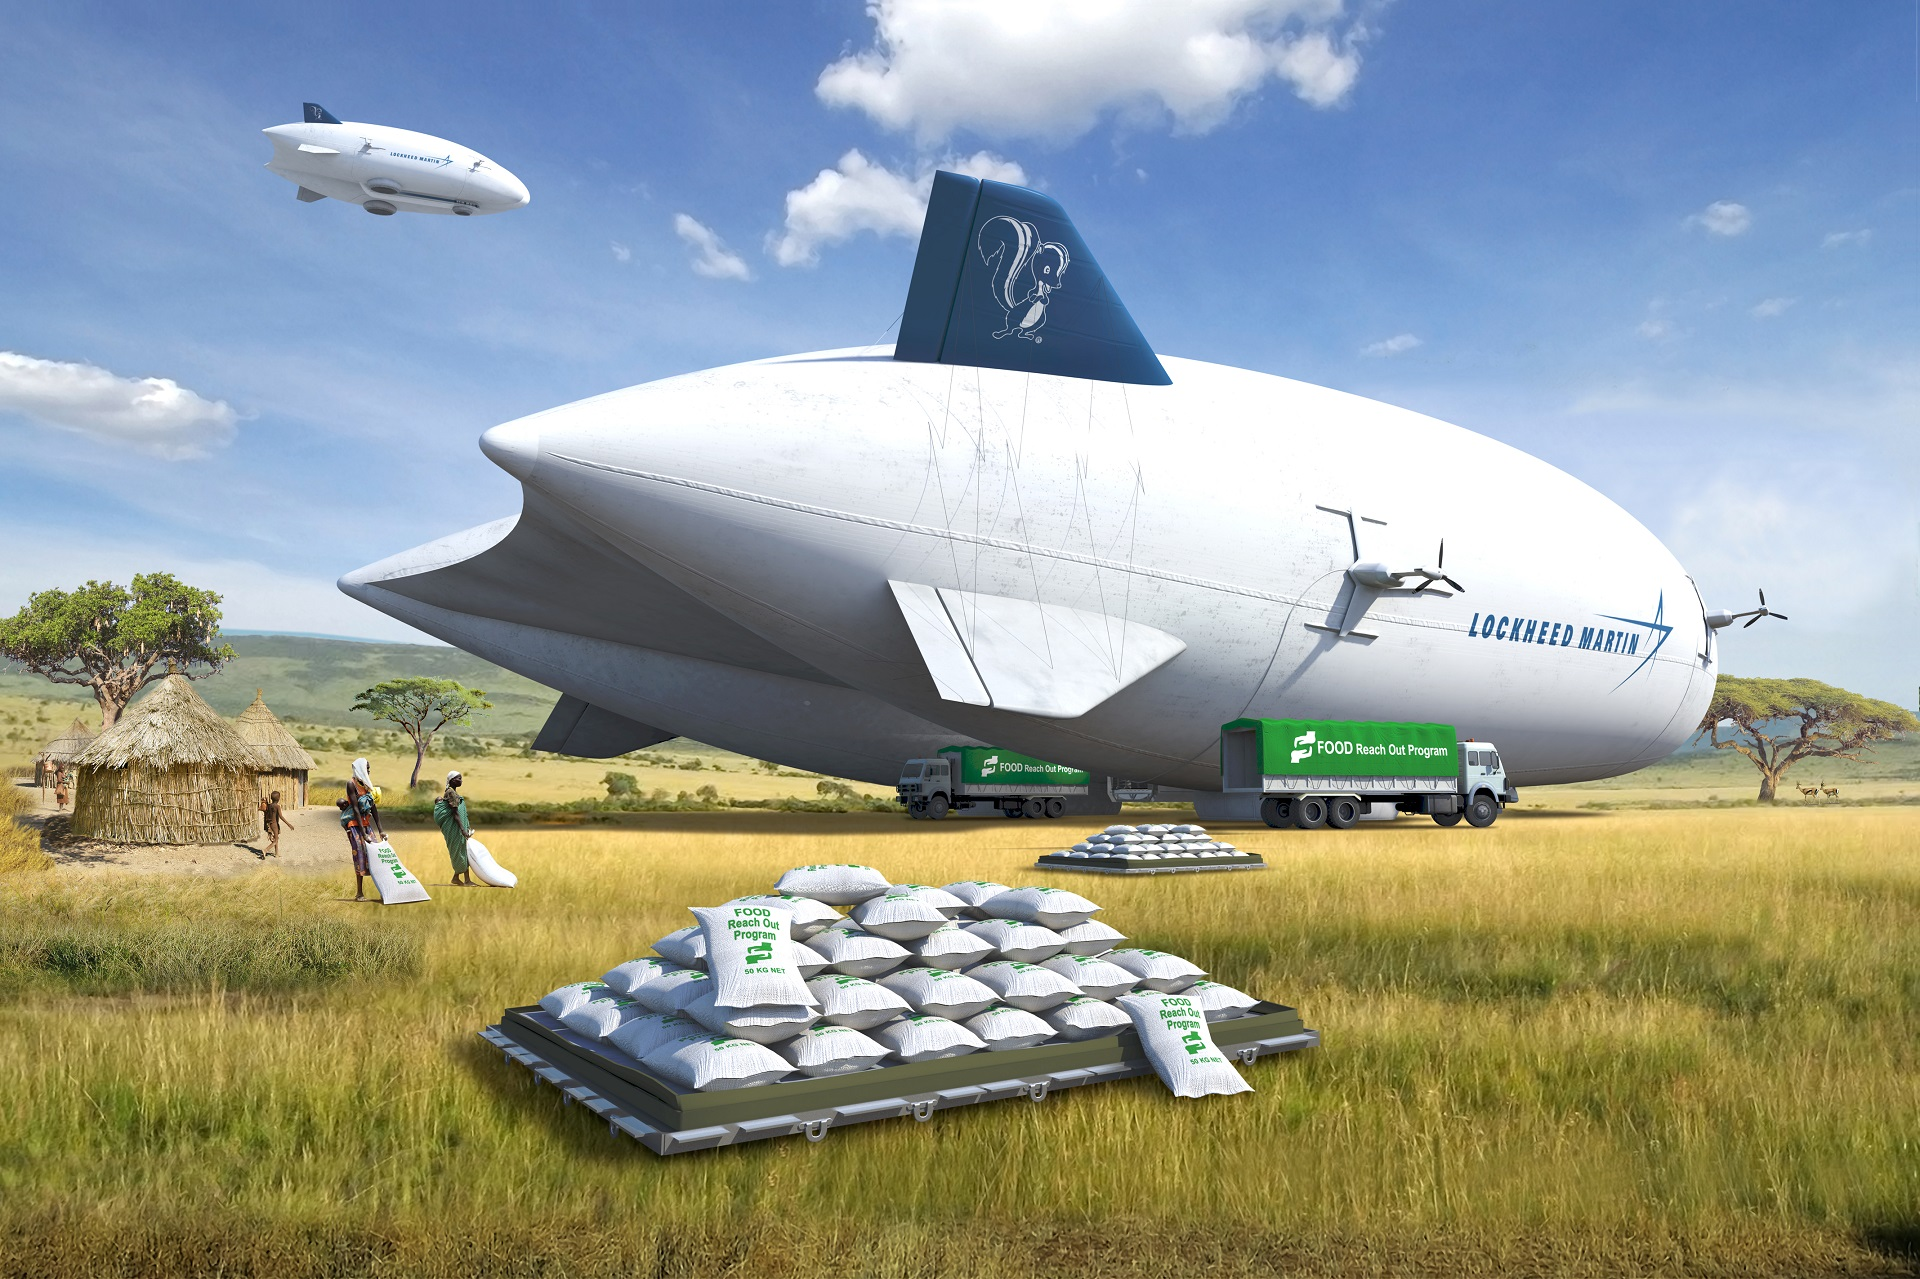 Airship_Food_Reach_Pgrm_Africa